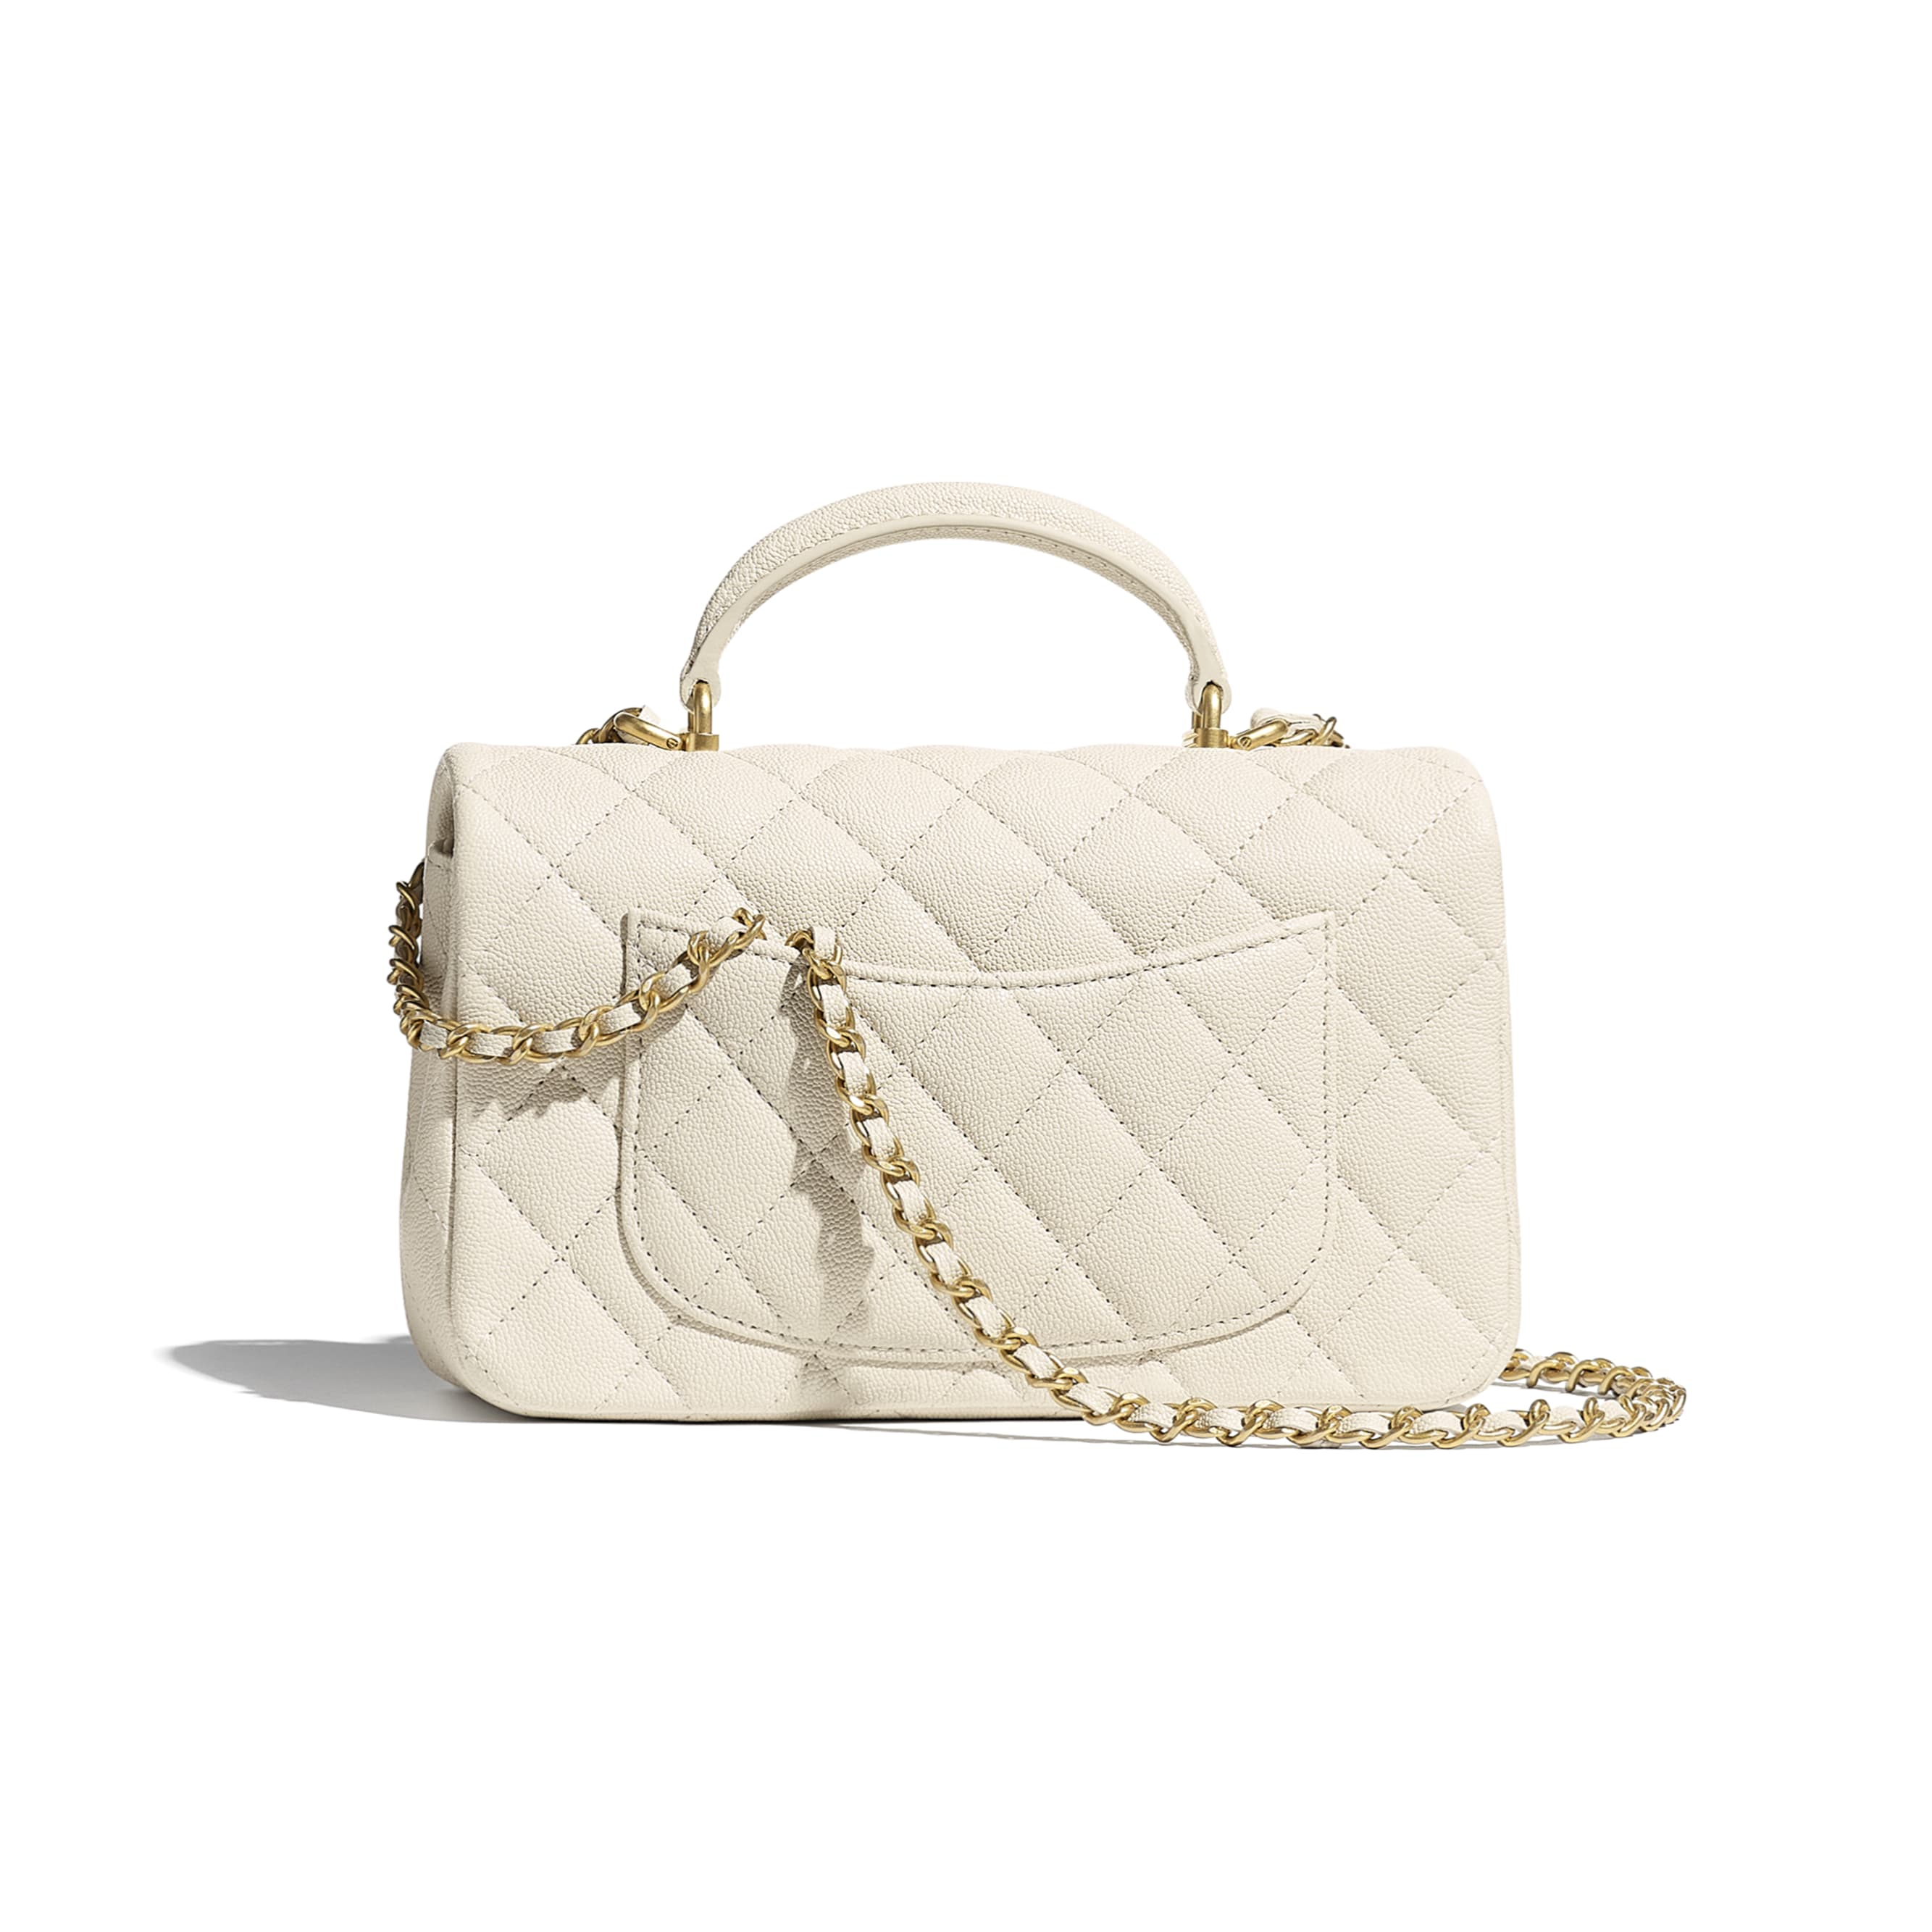 Mini Flap Bag with Top Handle - Beige - Grained Calfskin & Gold-Tone Metal - CHANEL - Alternative view - see standard sized version